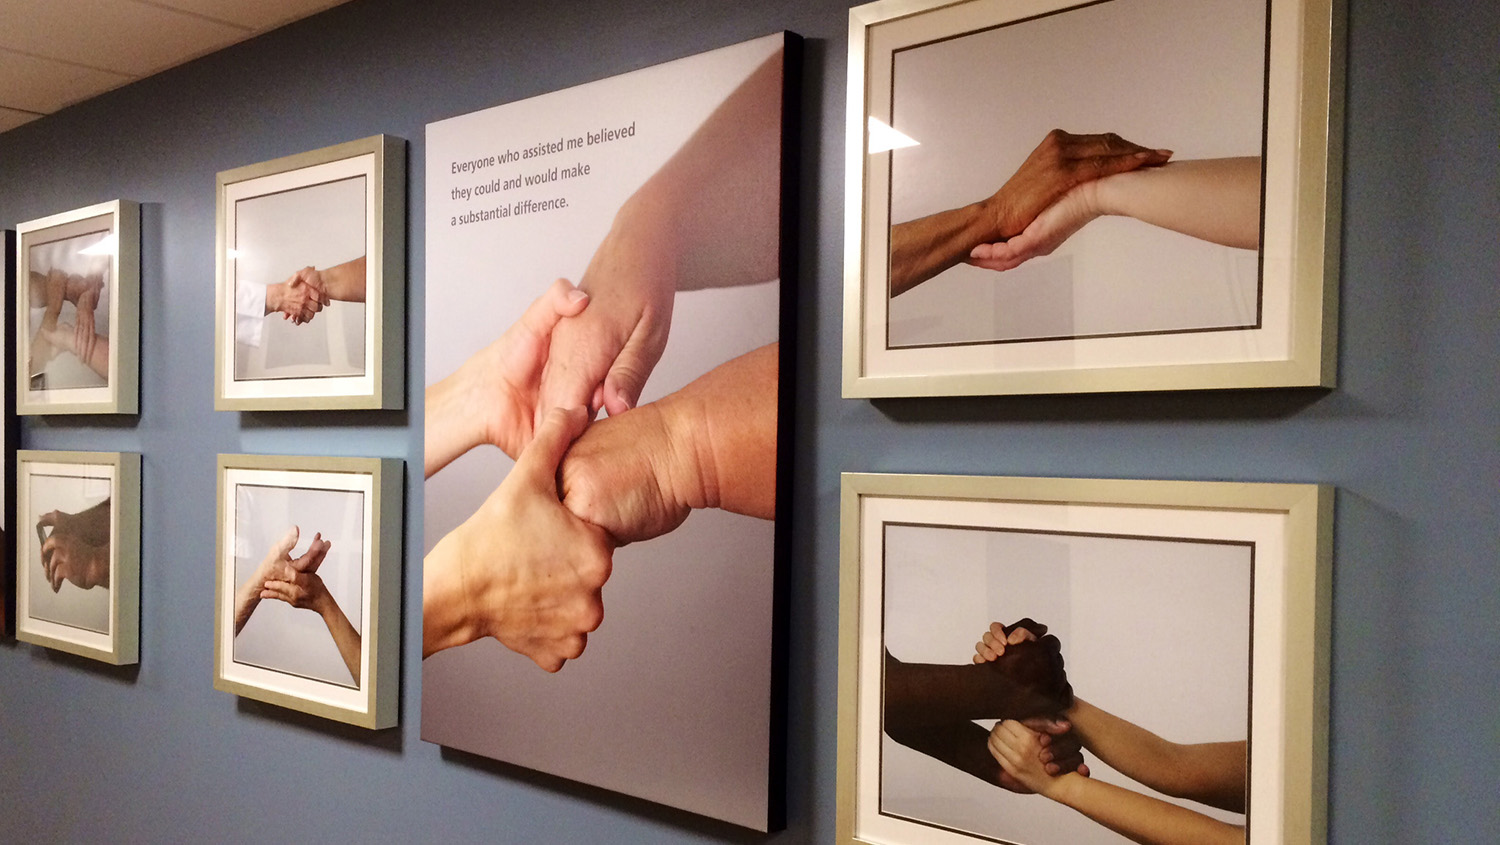 Healing Hands visual installation for hospitals